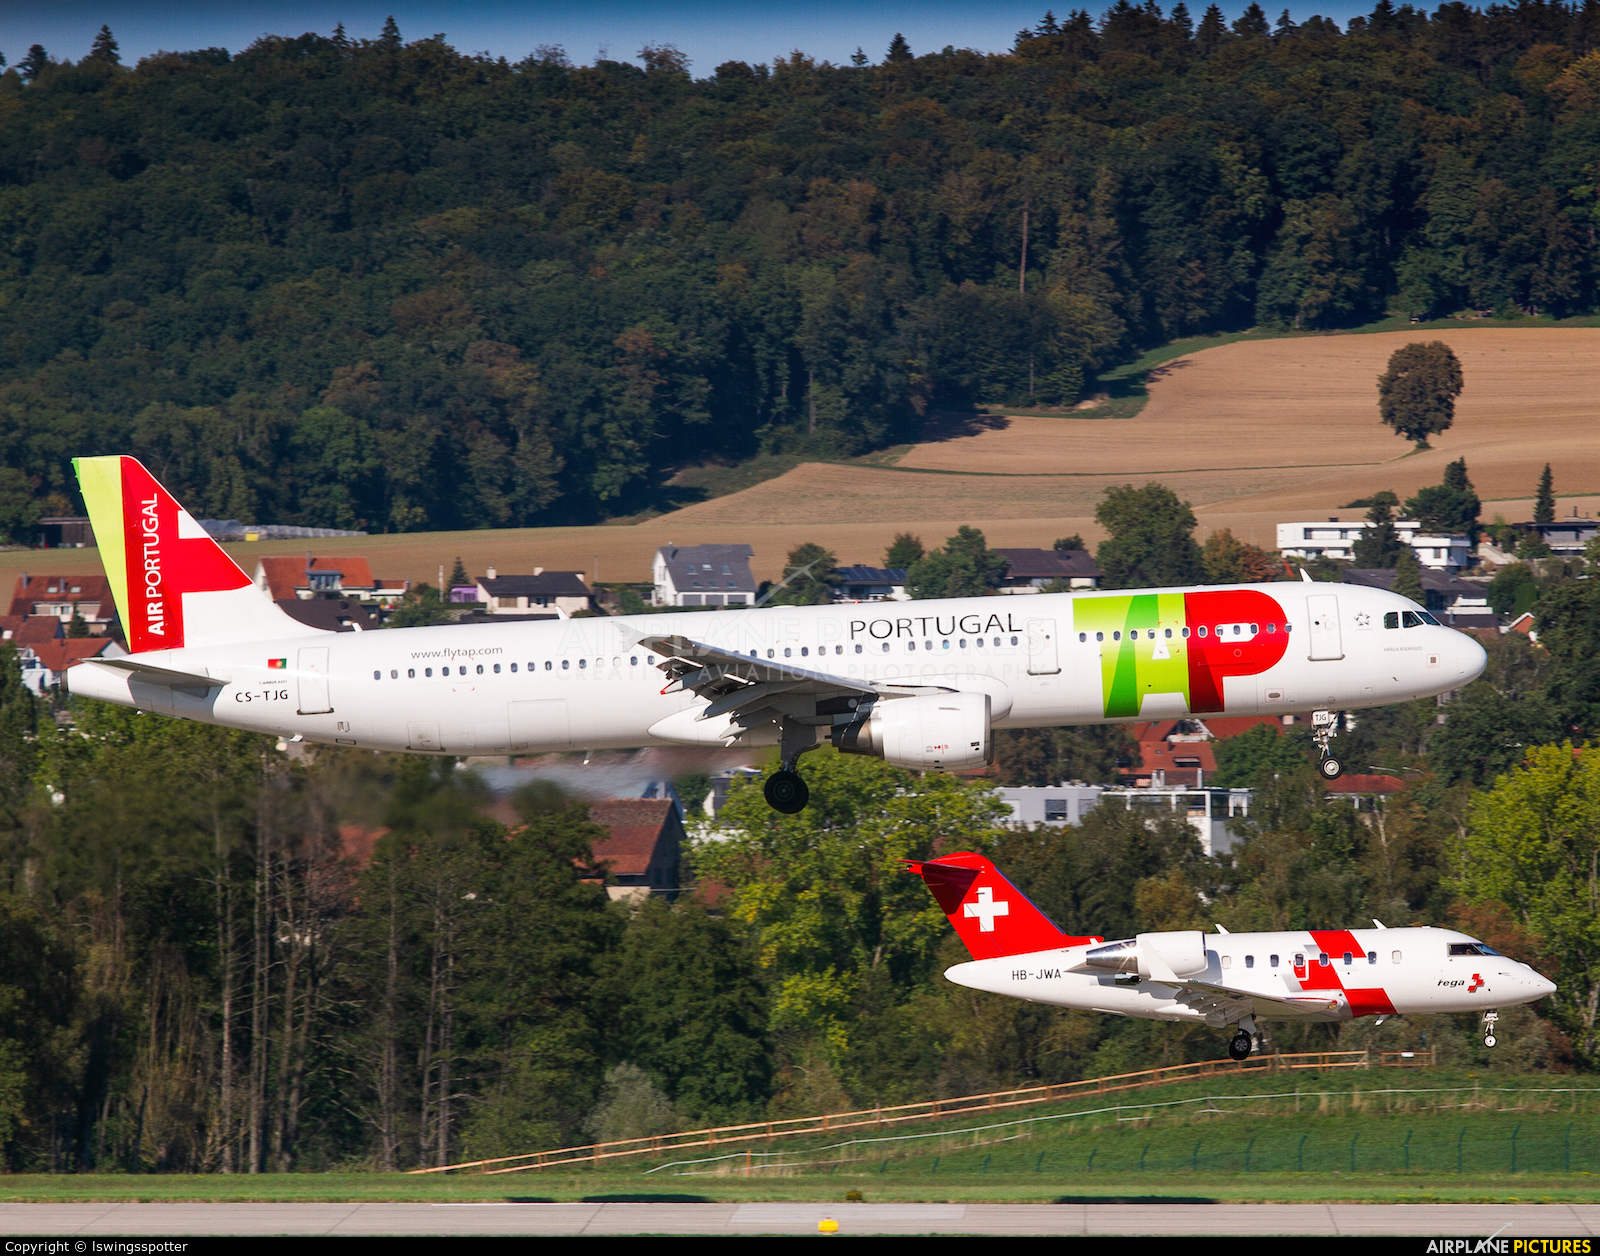 TAP Portugal CS-TJG aircraft at Zurich